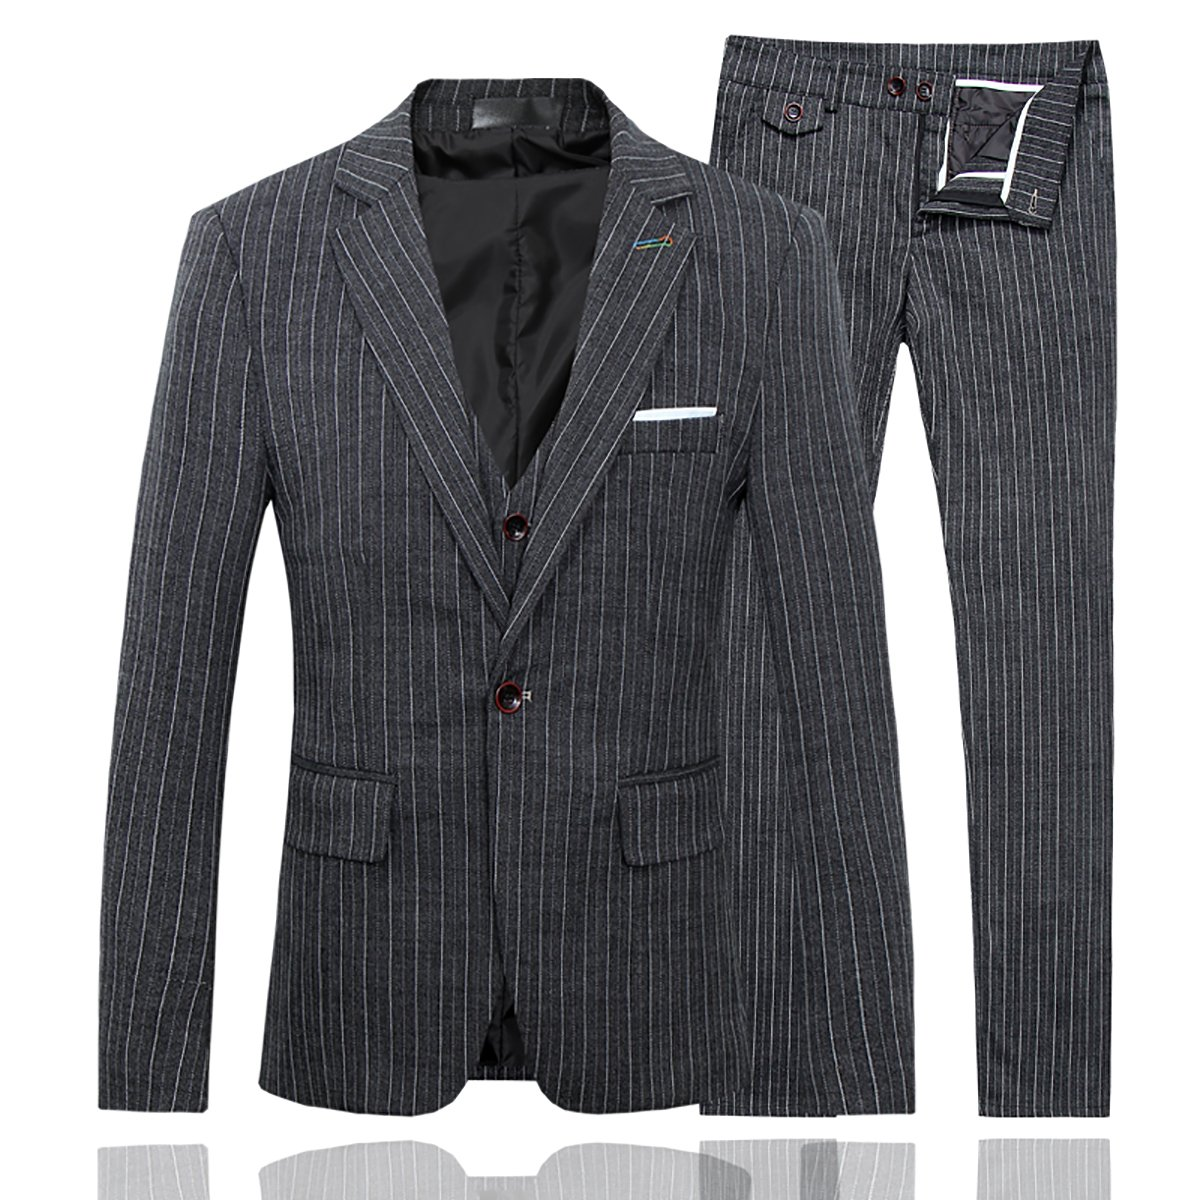 1920s Mens Suits Mens Plaid Modern Fit 3-Piece Suit Blazer Jacket Tux Vest & Trousers $82.99 AT vintagedancer.com